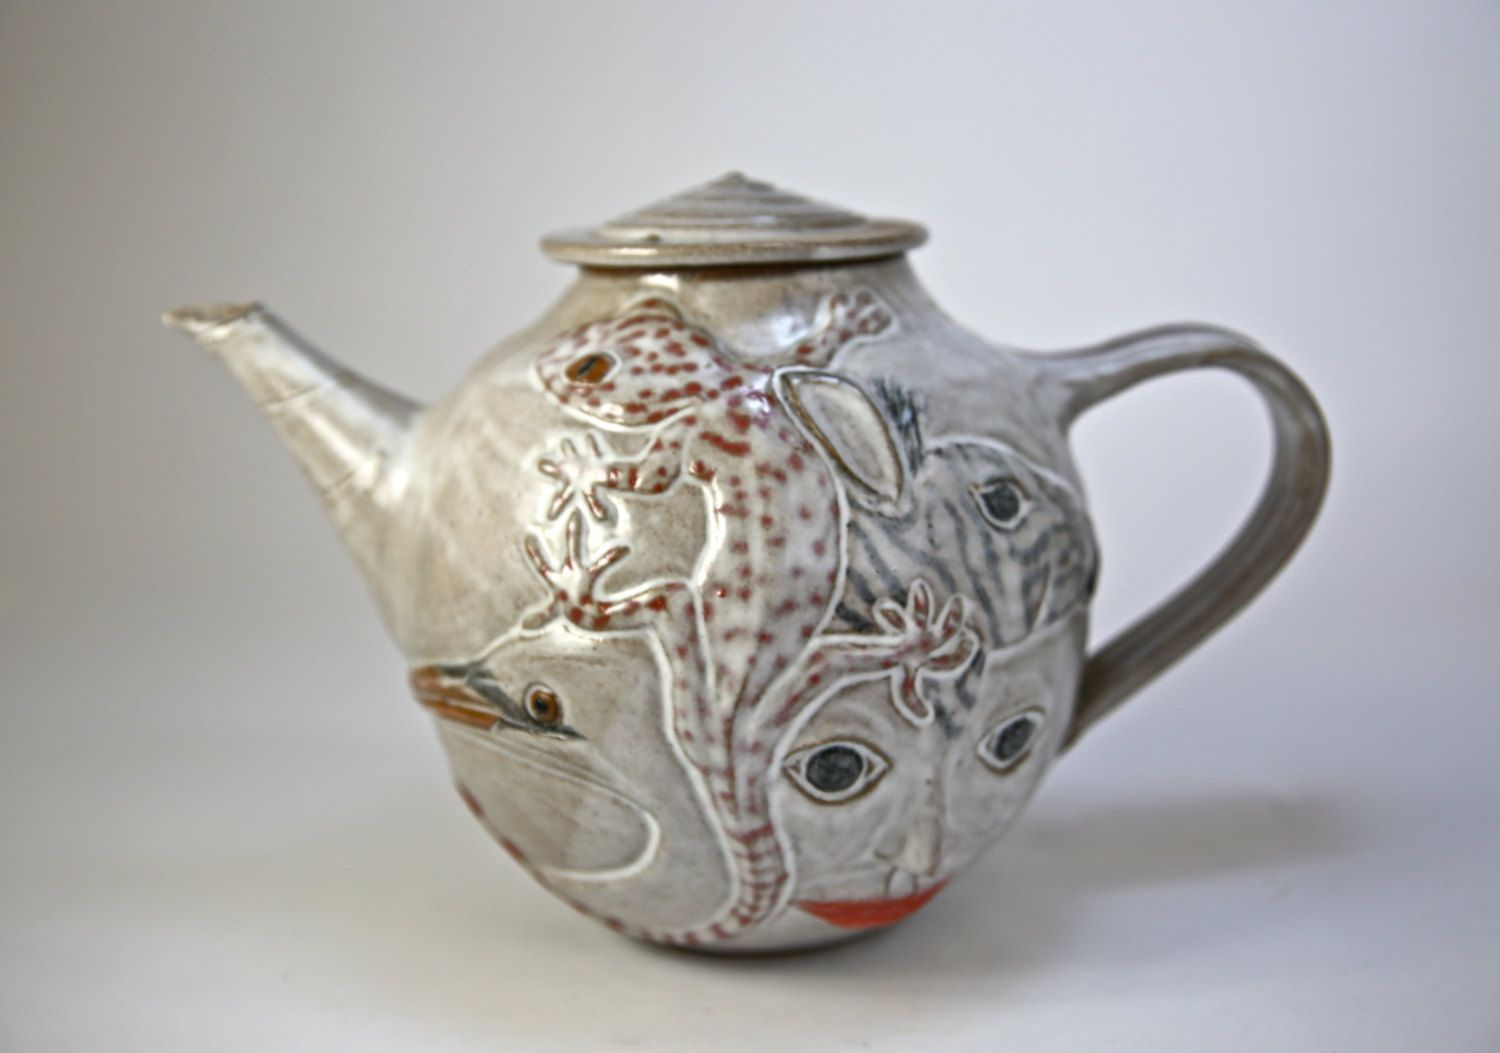 Animal Dream Teapot Gecko Zebra Bird Heron Face Art Piece Functional Hand Crafted Stoneware Teapot 8 1 8 Quot Tea Pots Stoneware Teapot Pottery Teapots